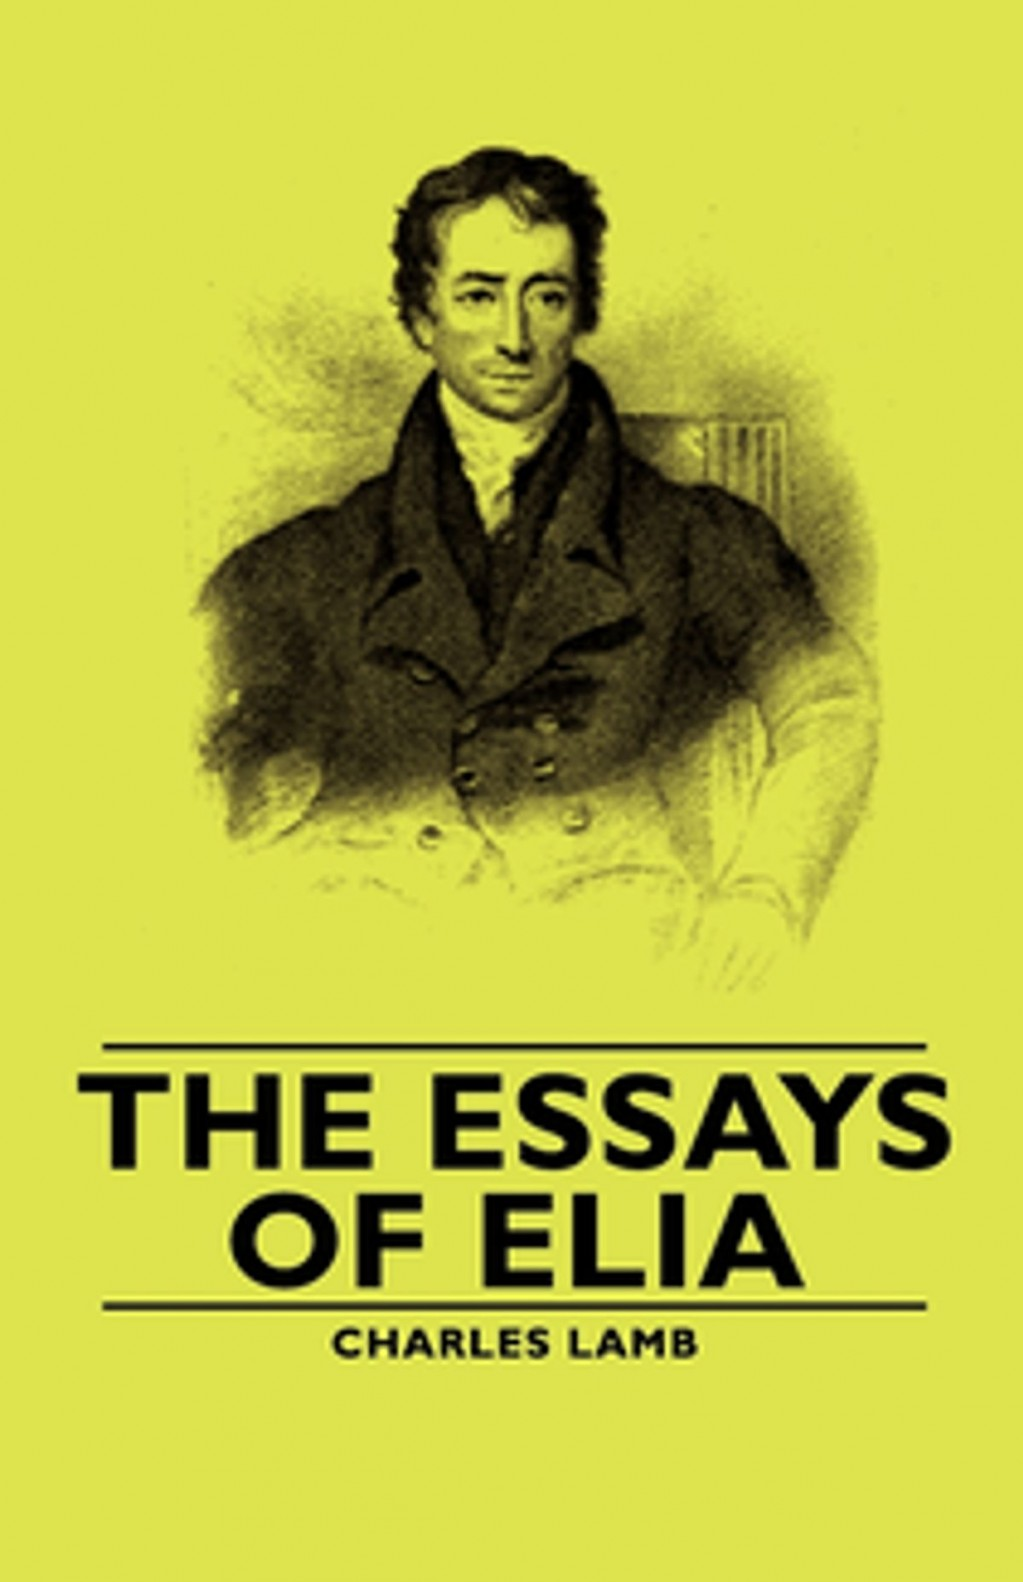 004 Essays Of Elia Essay Example Striking Epub Summary Text Pdf Large